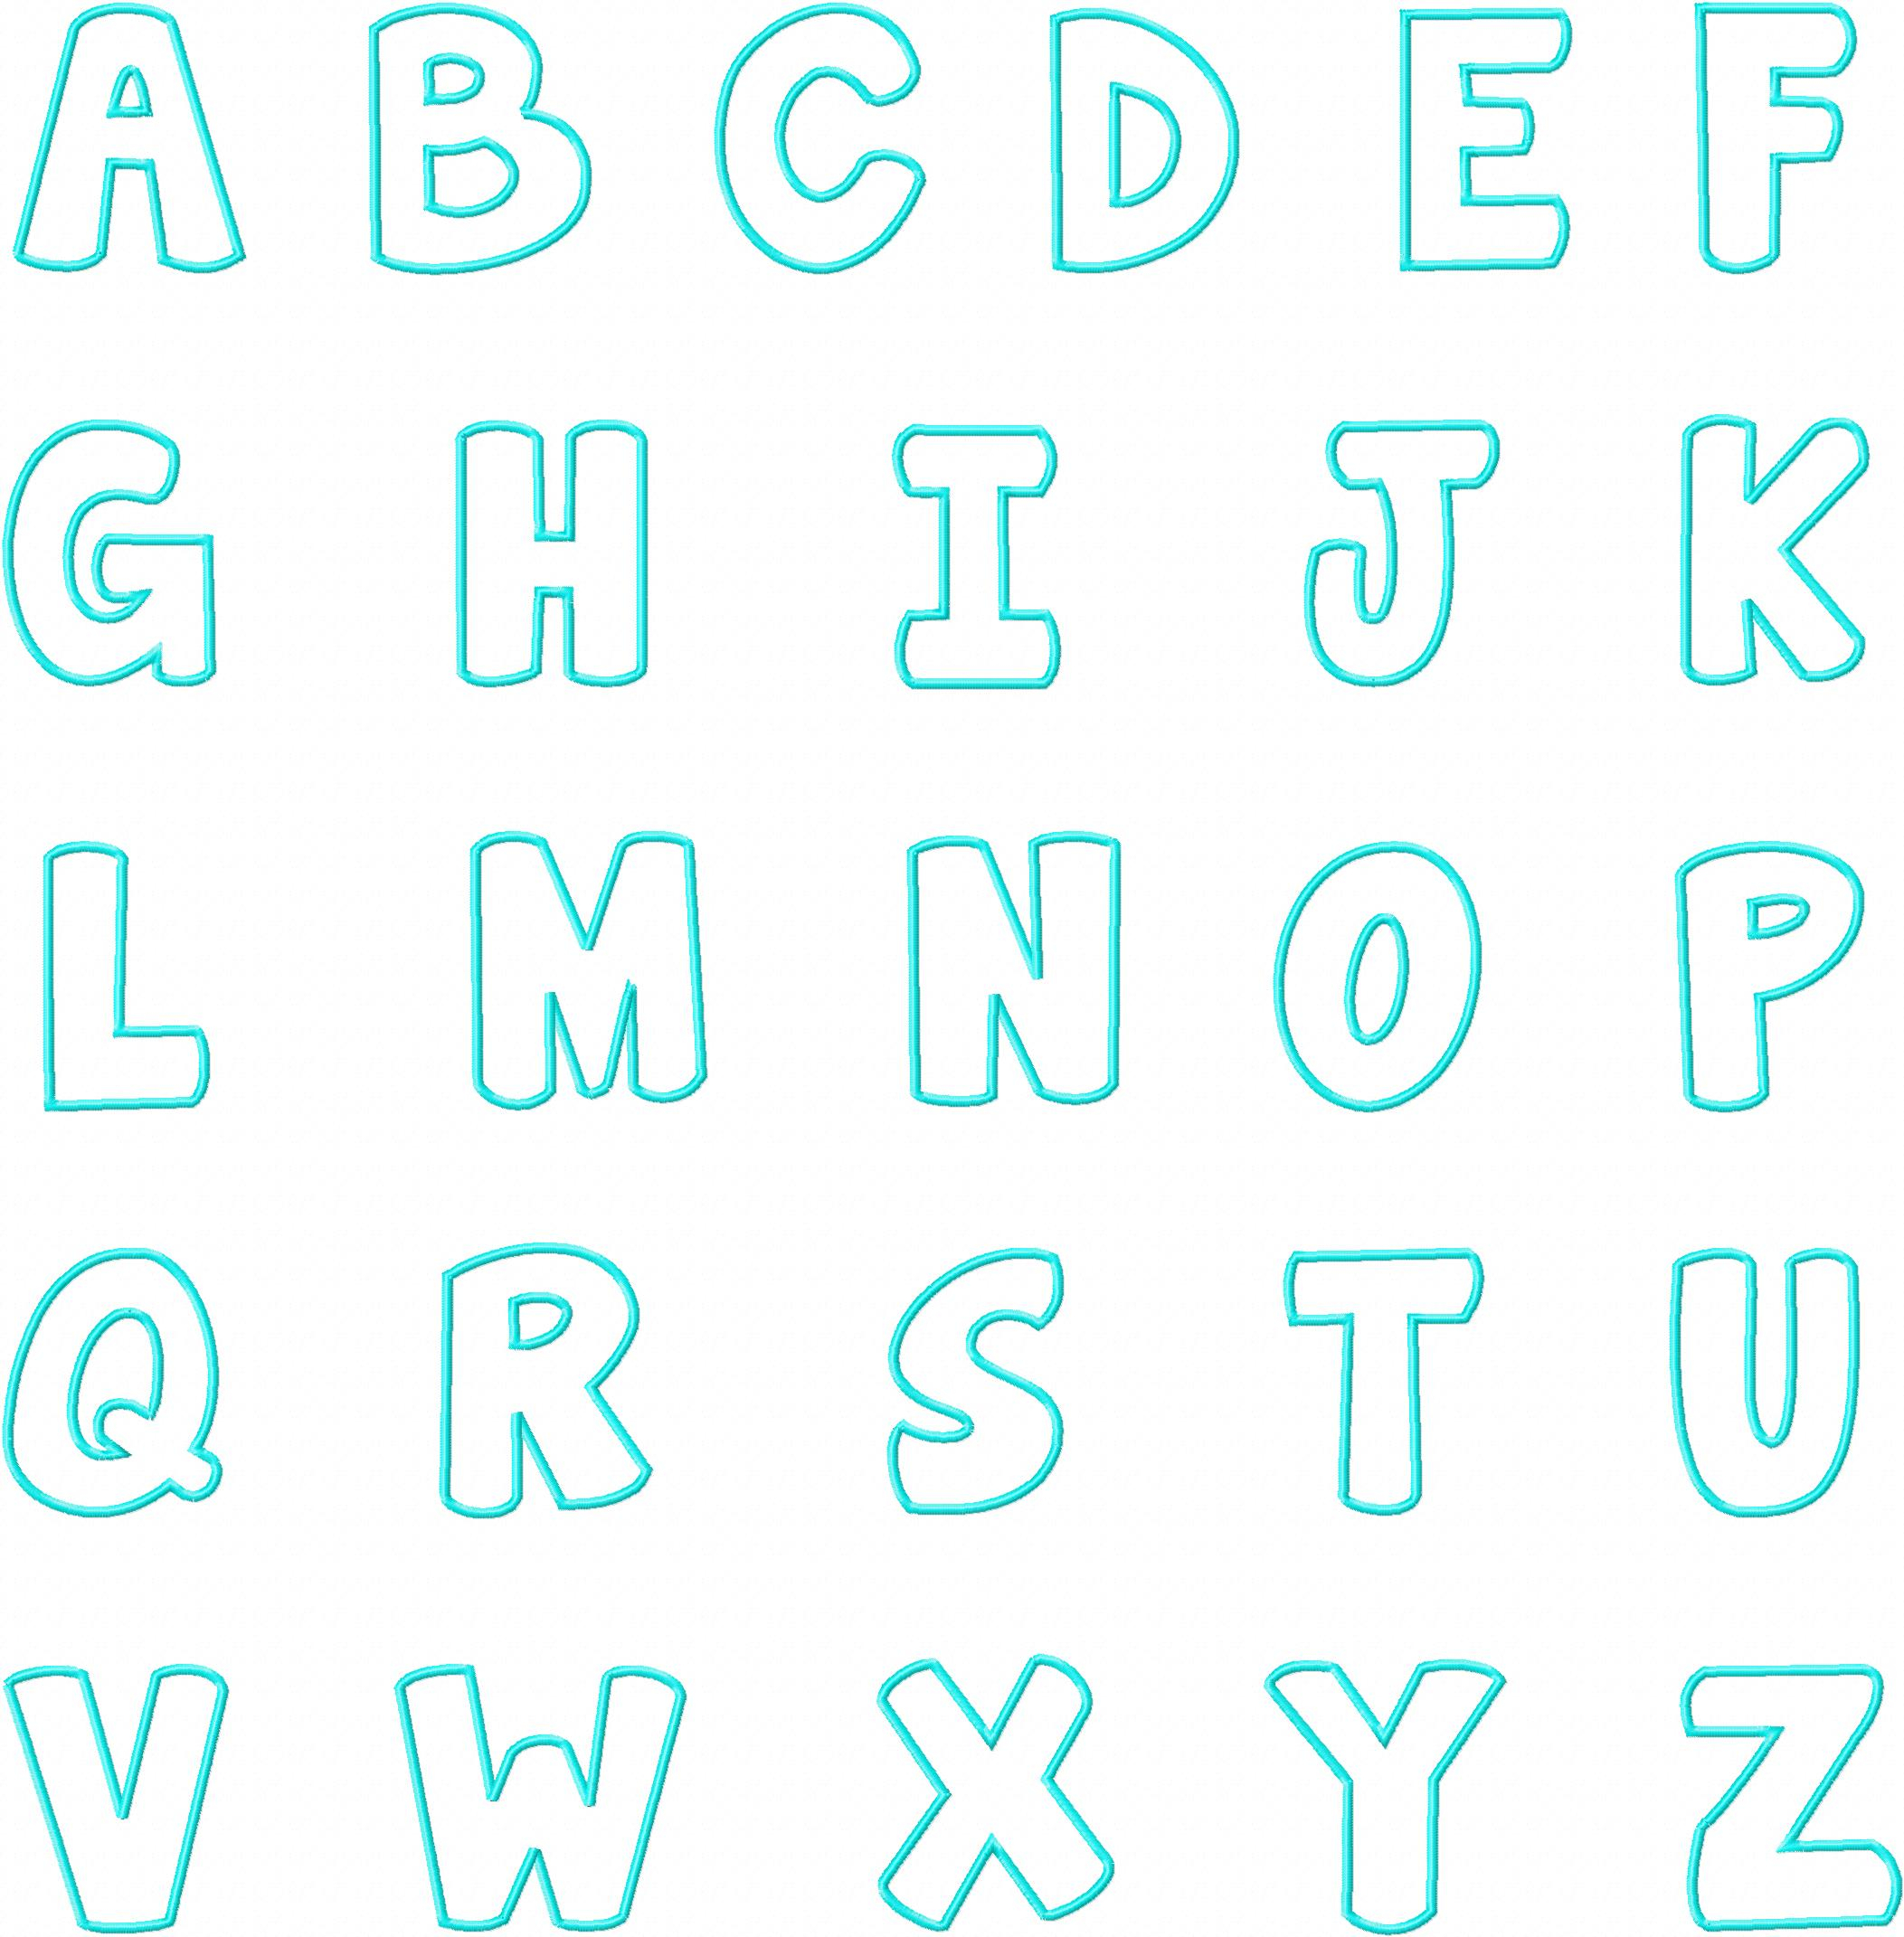 Embroidery Alphabet Patterns Embroidery Font Deal 50 Machine Embroidery Fonts